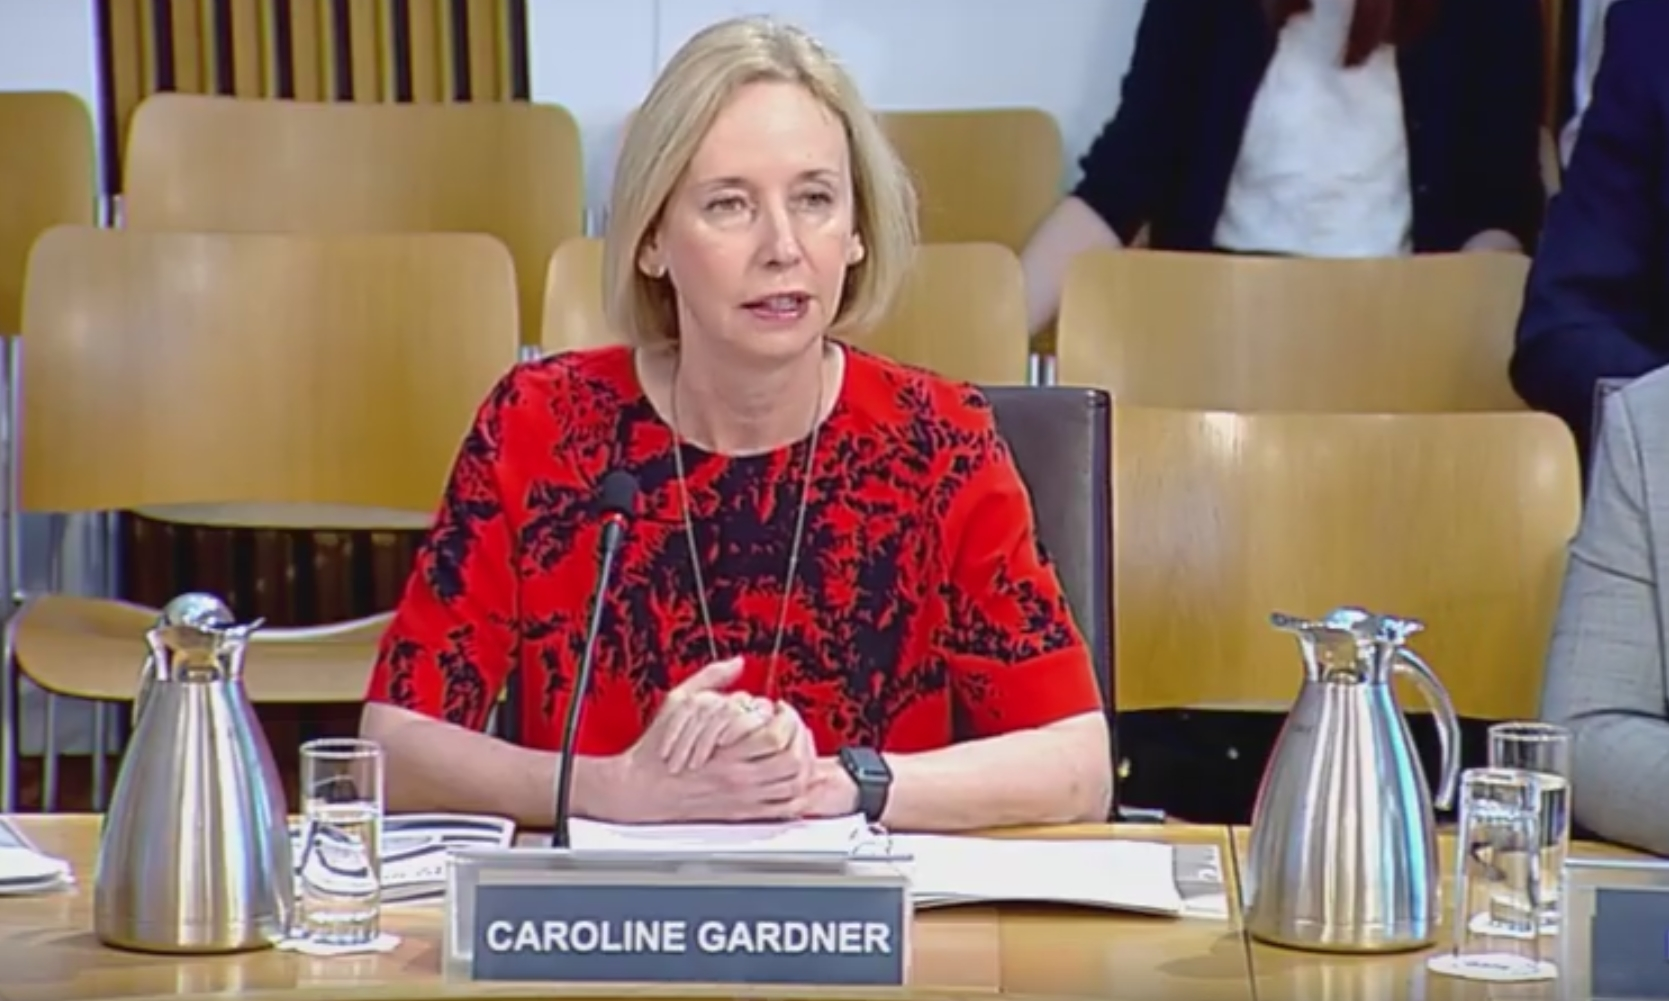 Caroline Gardner, the Auditor General